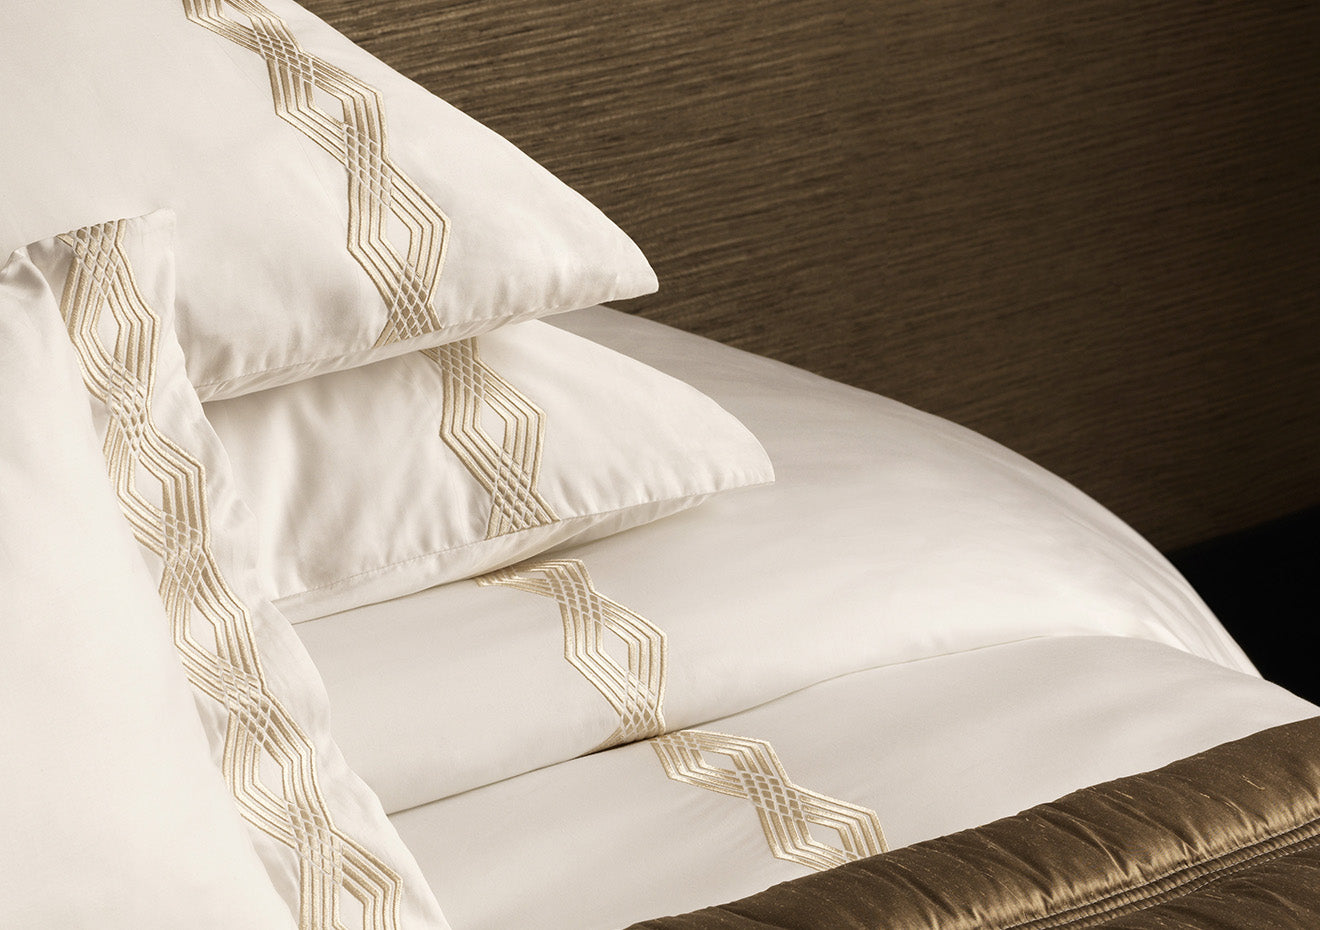 Luxury embroidered flat sheet with pillowcase from Luxdeco